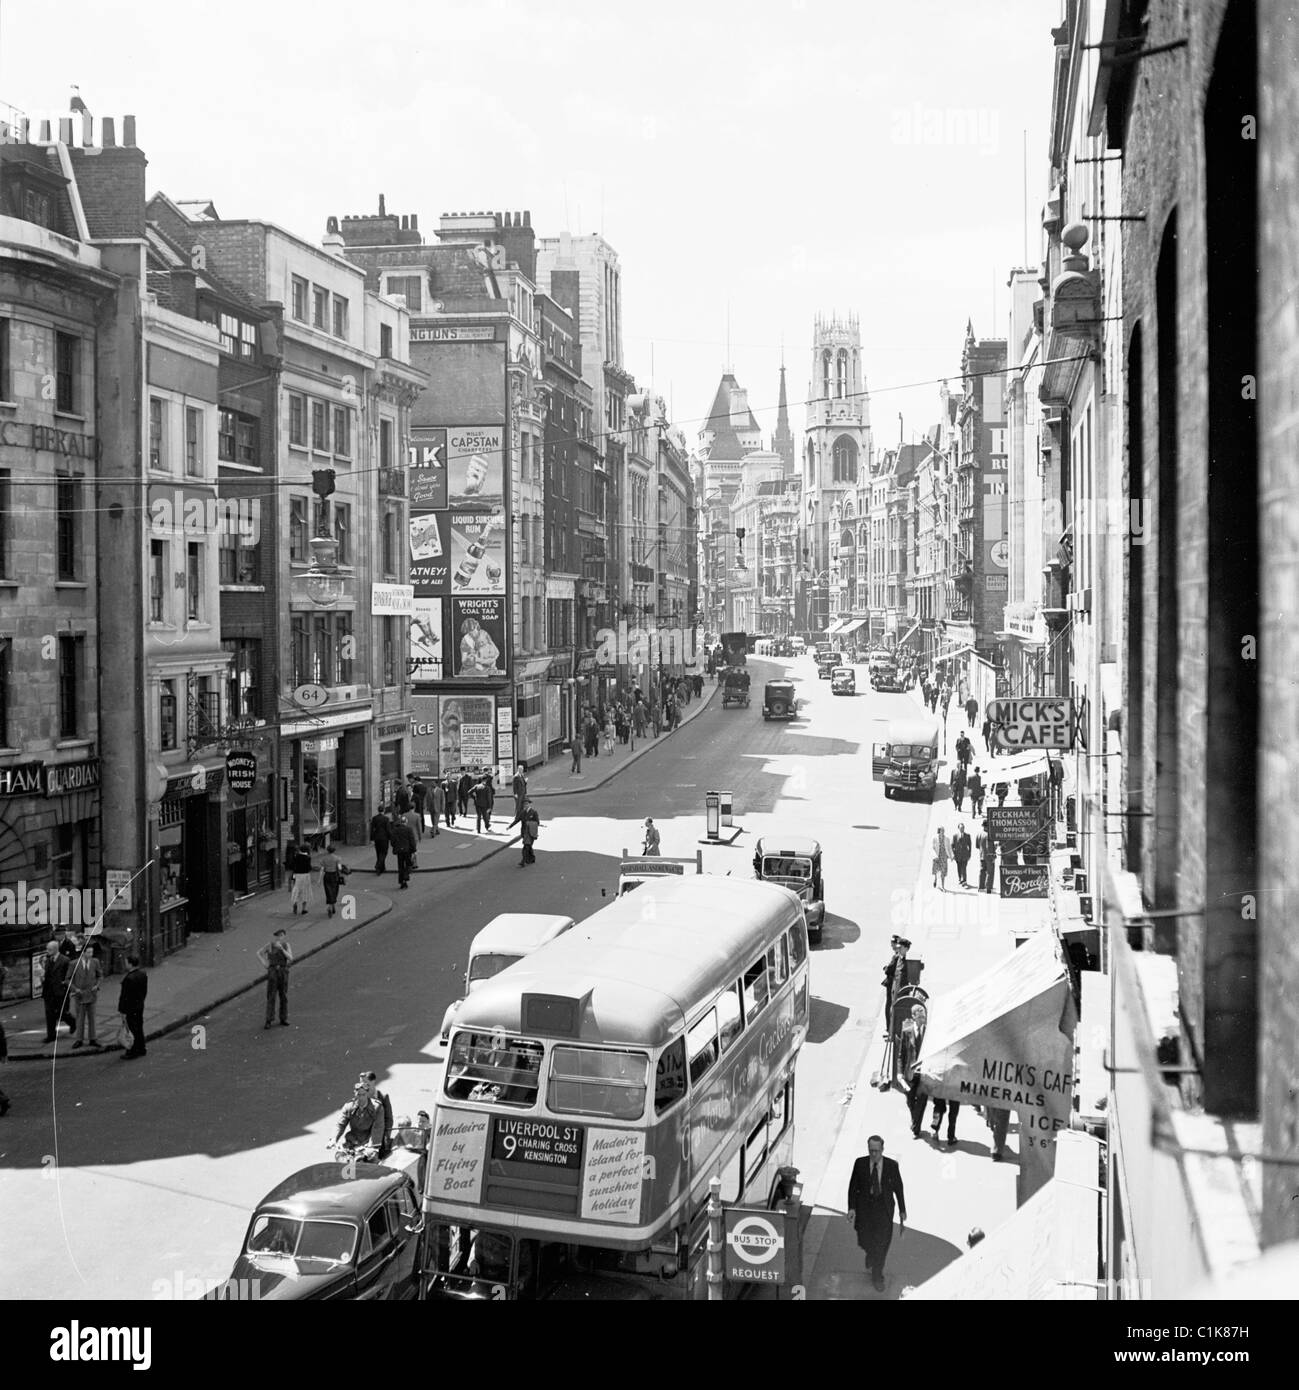 London, 1950s. A view along Fleet street, home  to the London newspapers, showing the Number 9 routemaster Bus. Stock Photo